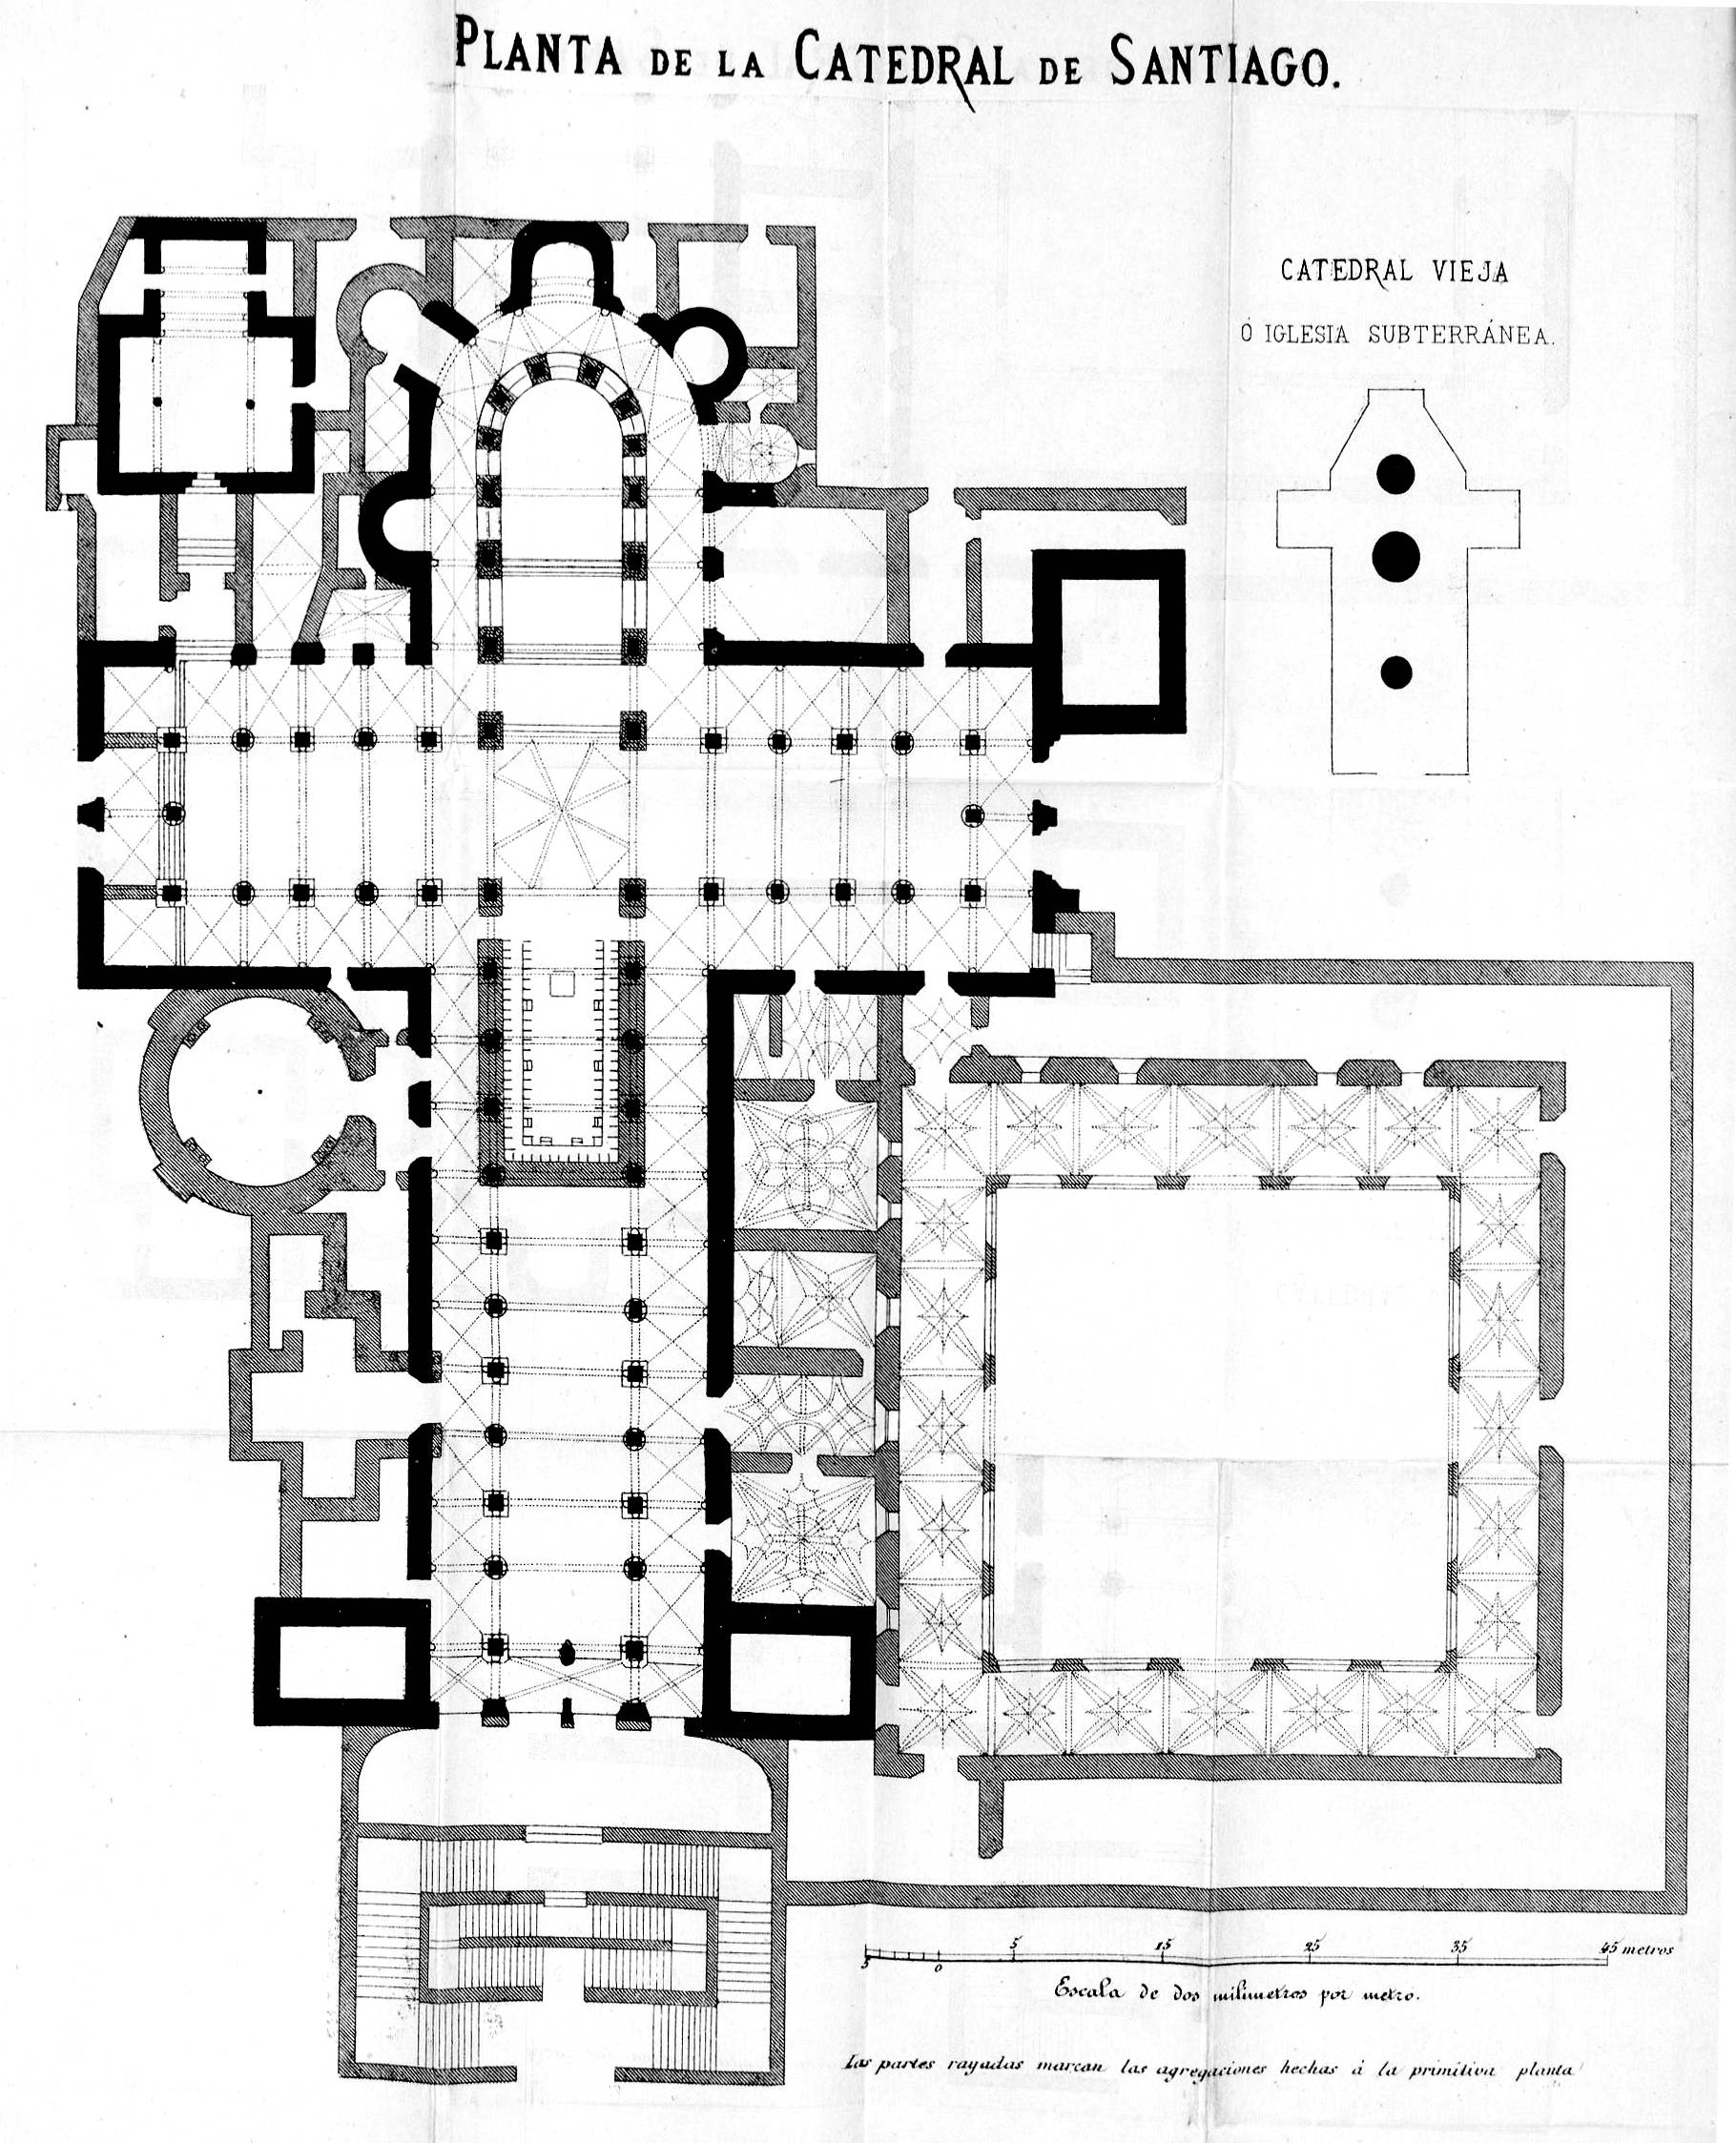 Villa Siena Floor Plans Archivo Planta De La Catedral De Santiago Descripcion